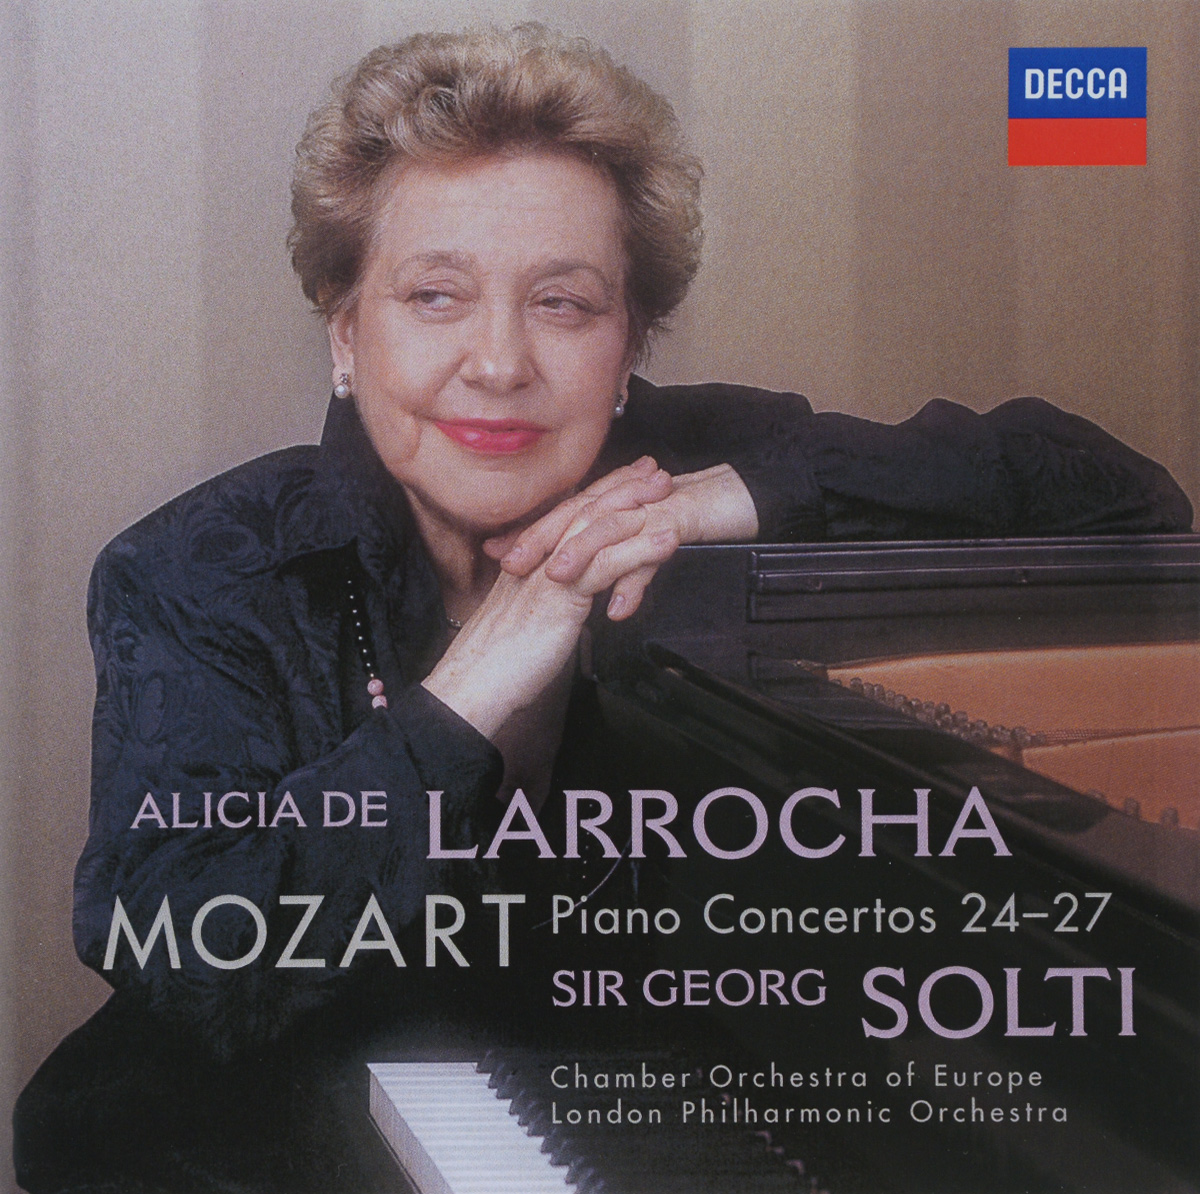 Алисия де Ларроча,Chamber orchestra of the Europe,Джордж Солти,London Philharmonic Orchestra Mozart. Alicia De Larrocha. Piano Concertos 24-27 (2 CD) рудольф серкин the london symphony orchestra chamber orchestra of the europe клаудио аббадо rudolf serkin mozart piano concertos 7 cd